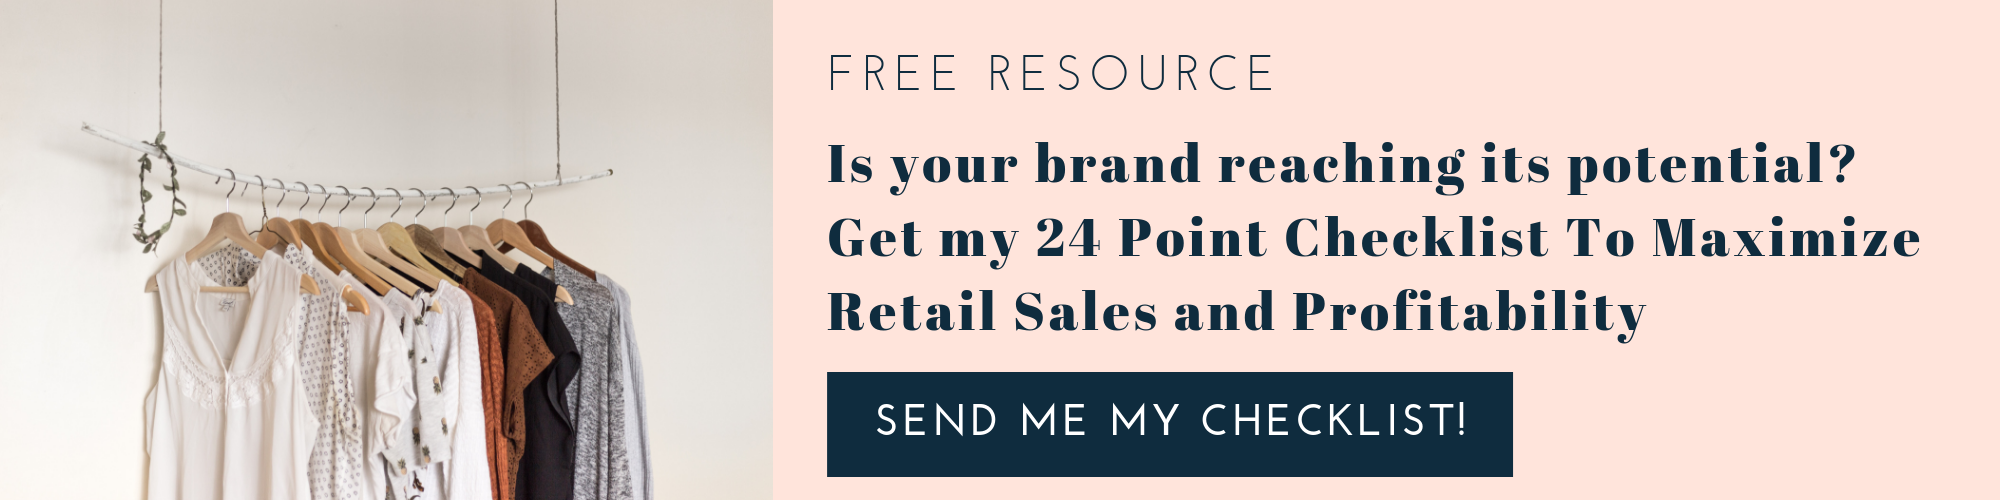 24 point checklist to maximize retail sales and profitability